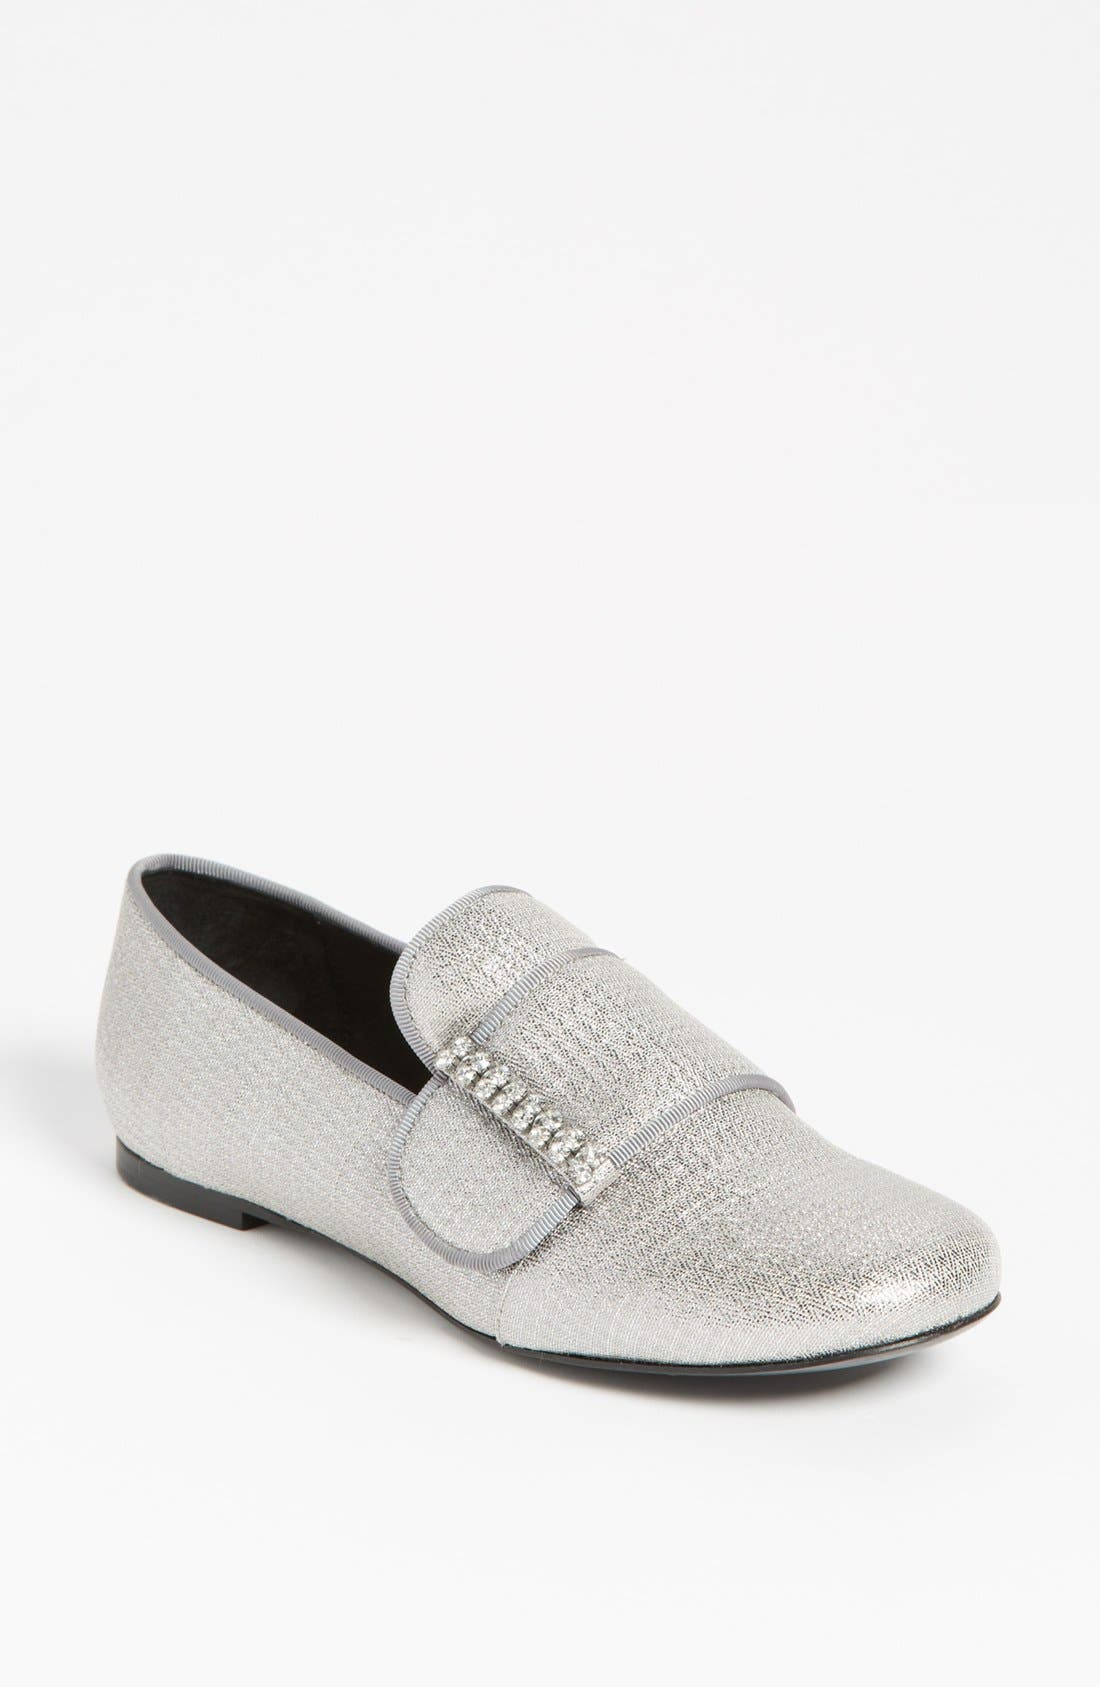 Main Image - See by Chloé 'Ziggy' Loafer Flat